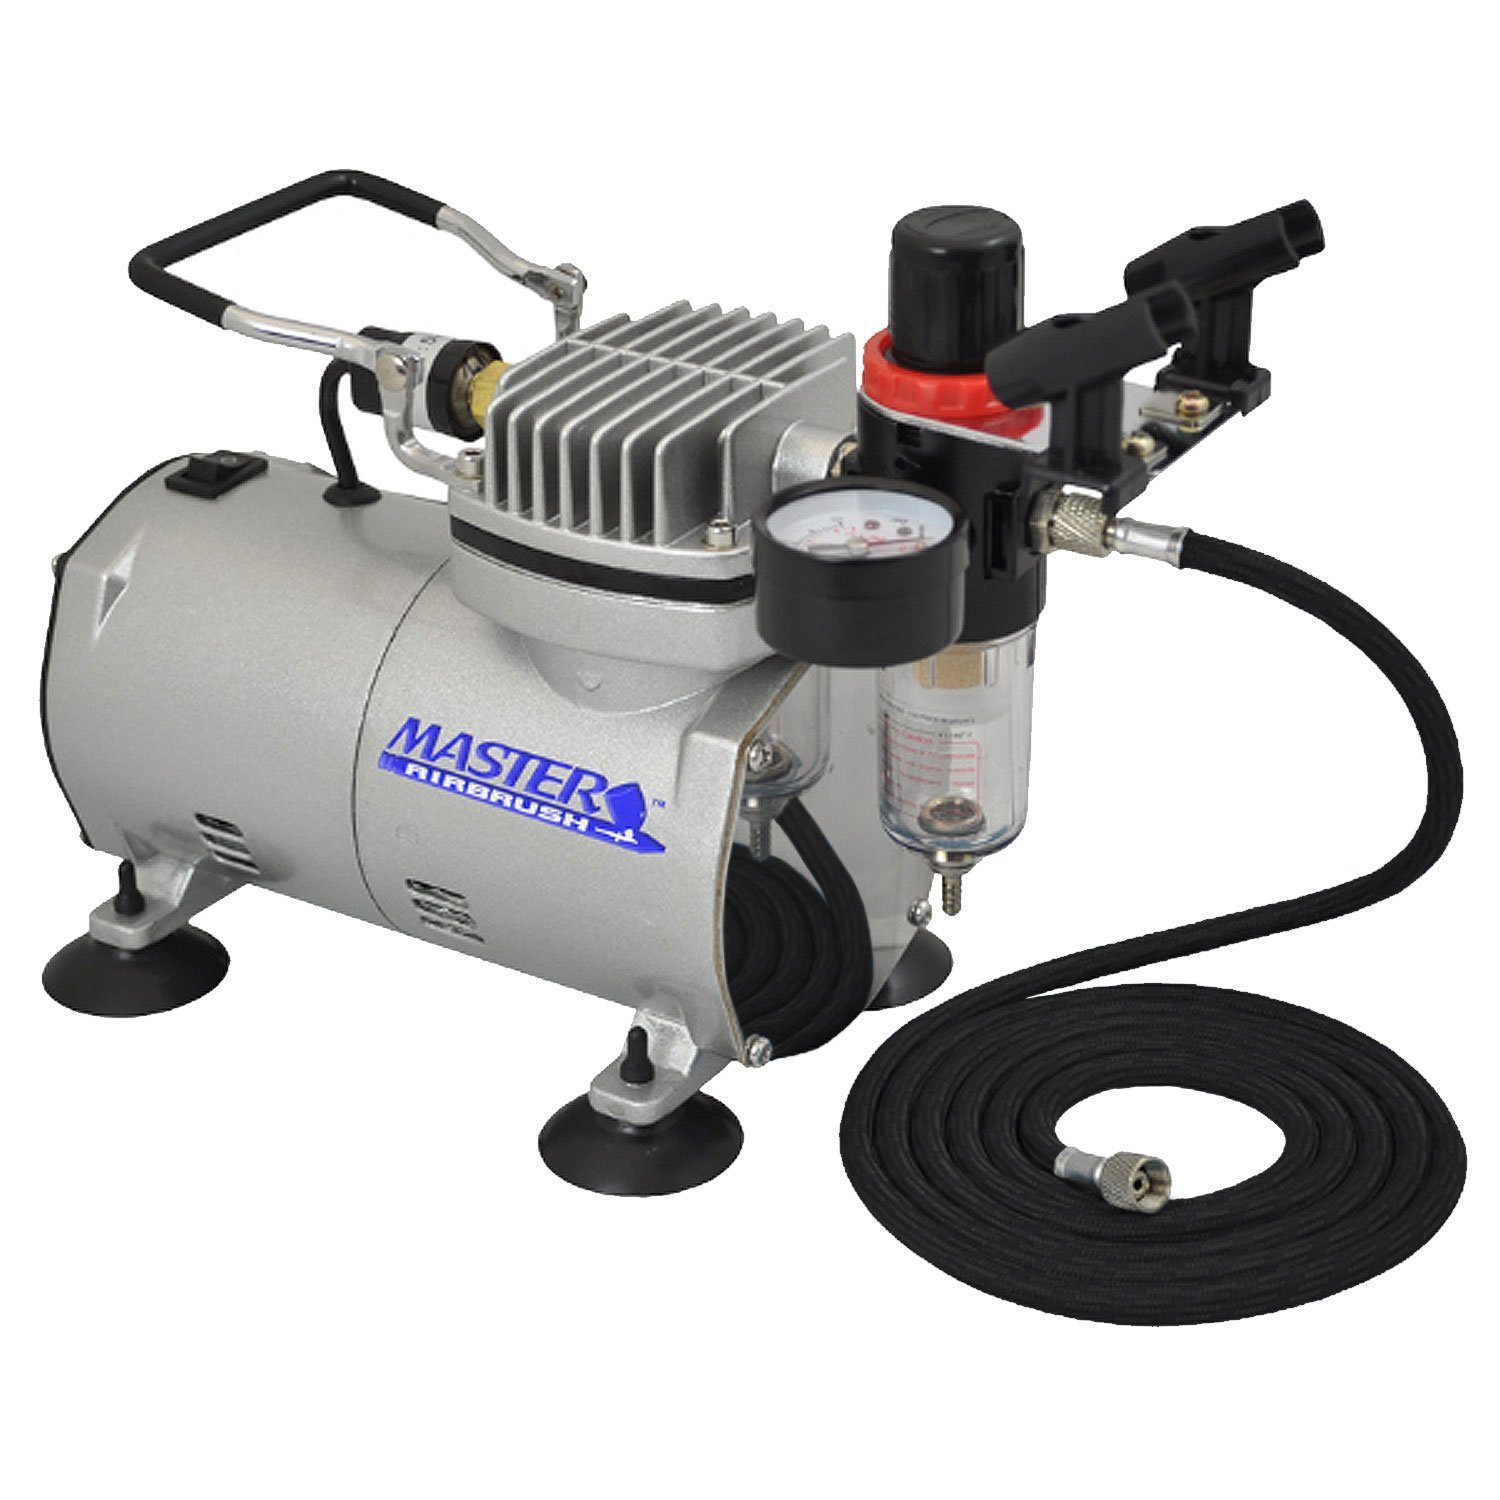 Master Airbrush High Performance Airbrush Air Compressor with Filter Black Air Hose /& Dual-brush Holder by Master Airbrush